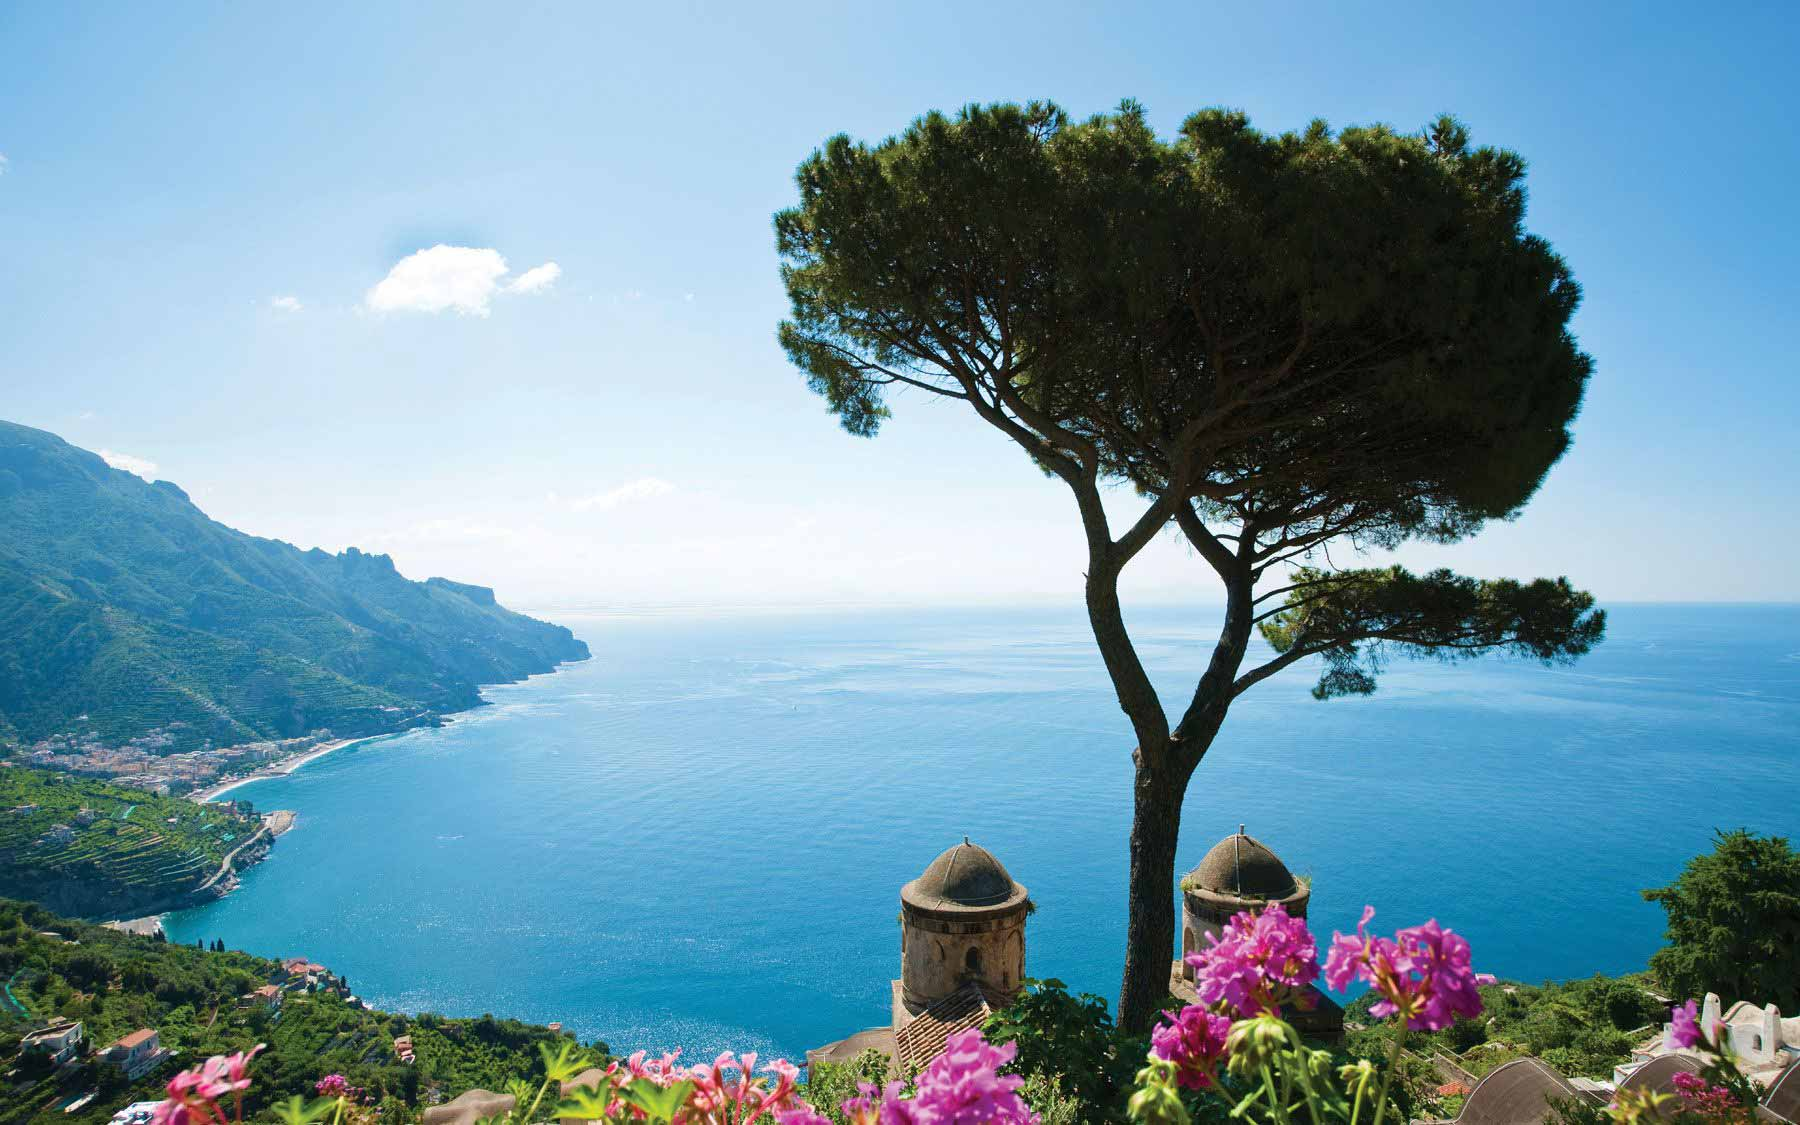 Quaint and peaceful Ravello